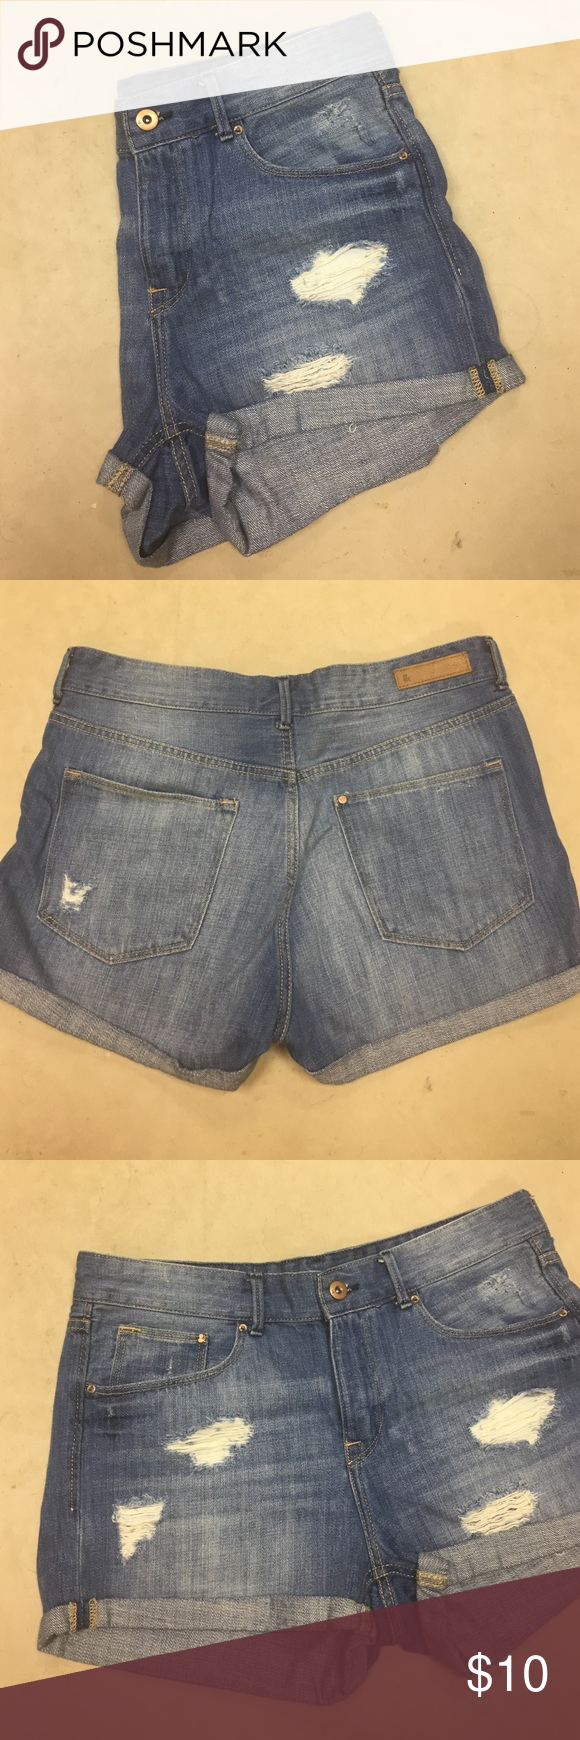 H&M Distressed Denim Shorts Faded Denim with distressing - only worn once - 5 functional pockets - like new condition H&M Shorts Jean Shorts